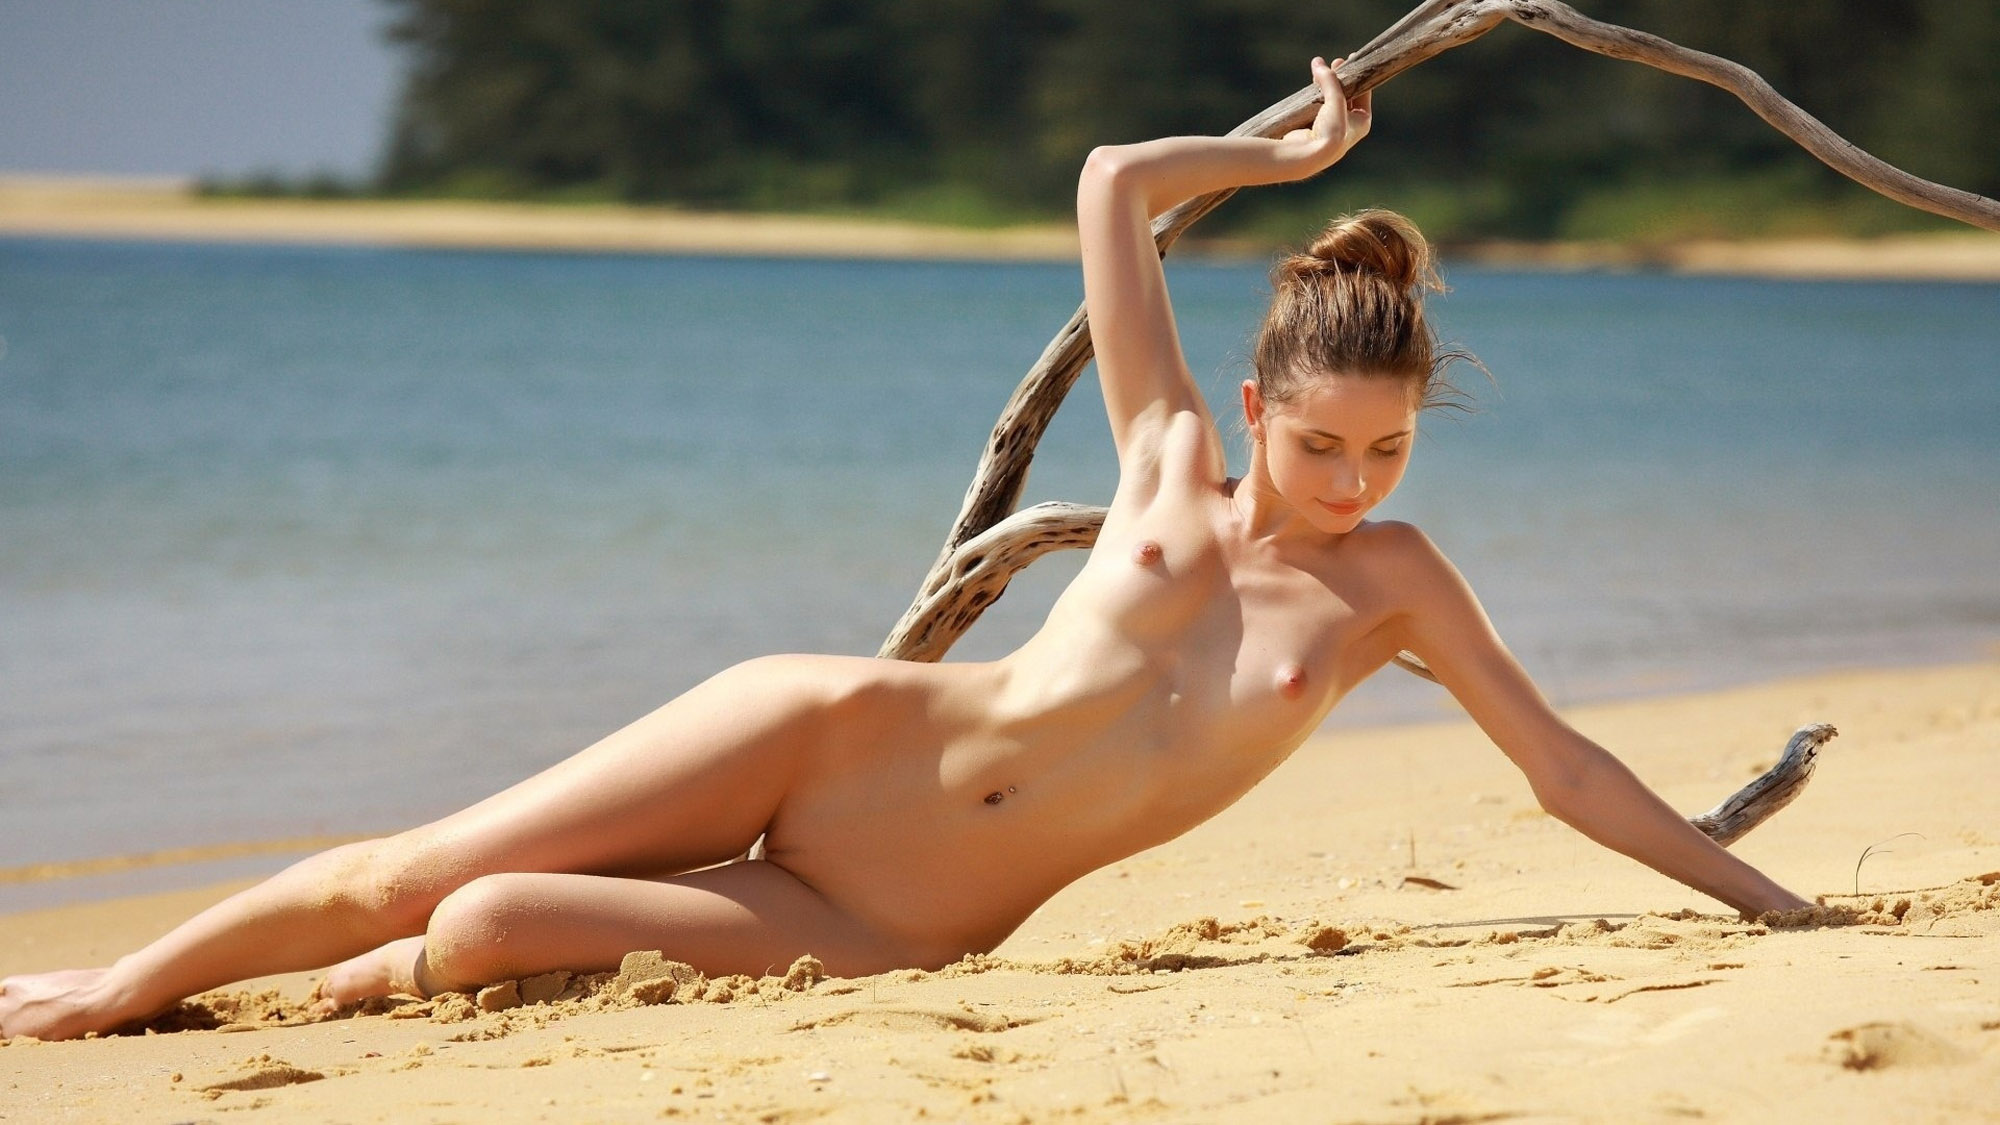 Nude girl beach — photo 1